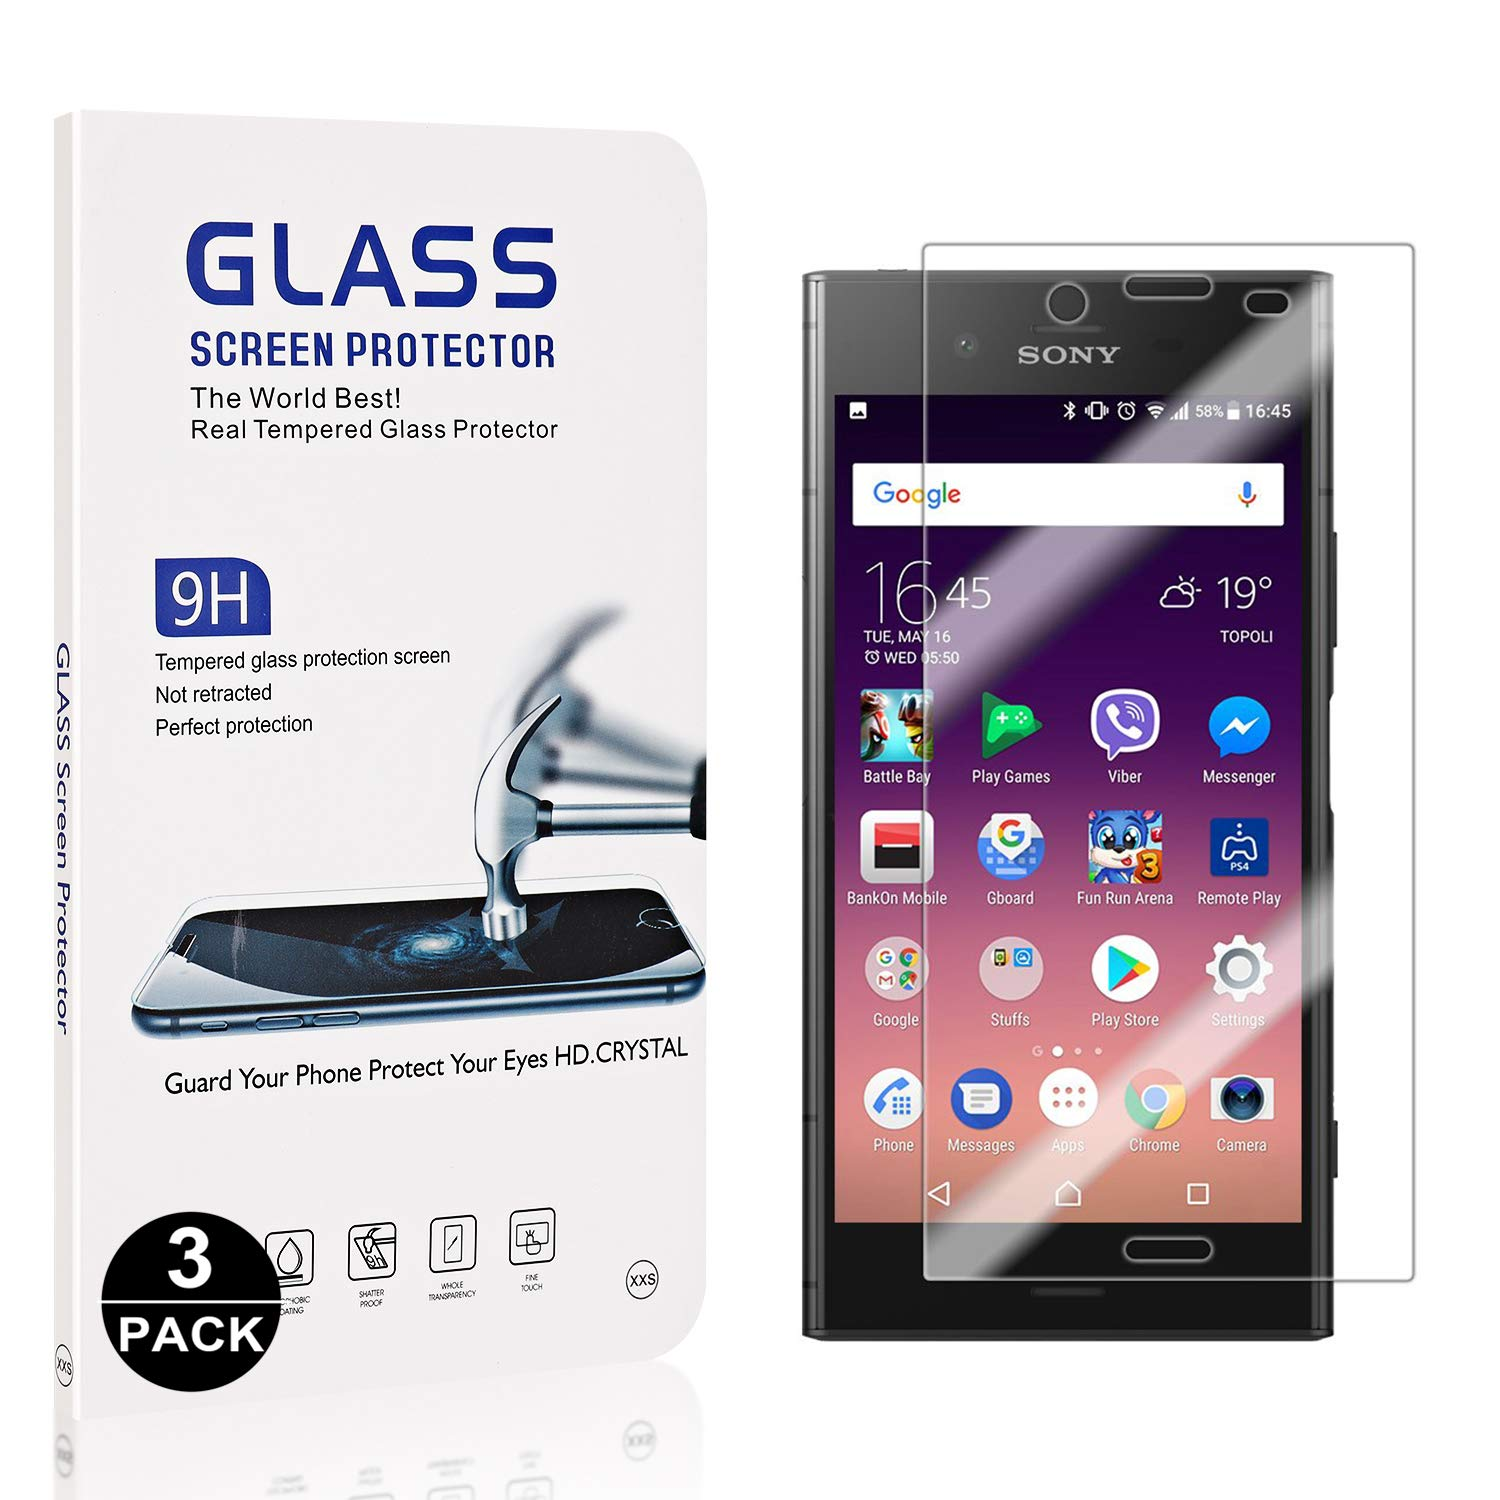 9H Hardness Screen Protector Film for Sony Xperia XZ1 Anti Scratches 3 Pack Bear Village Sony Xperia XZ1 Tempered Glass Screen Protector